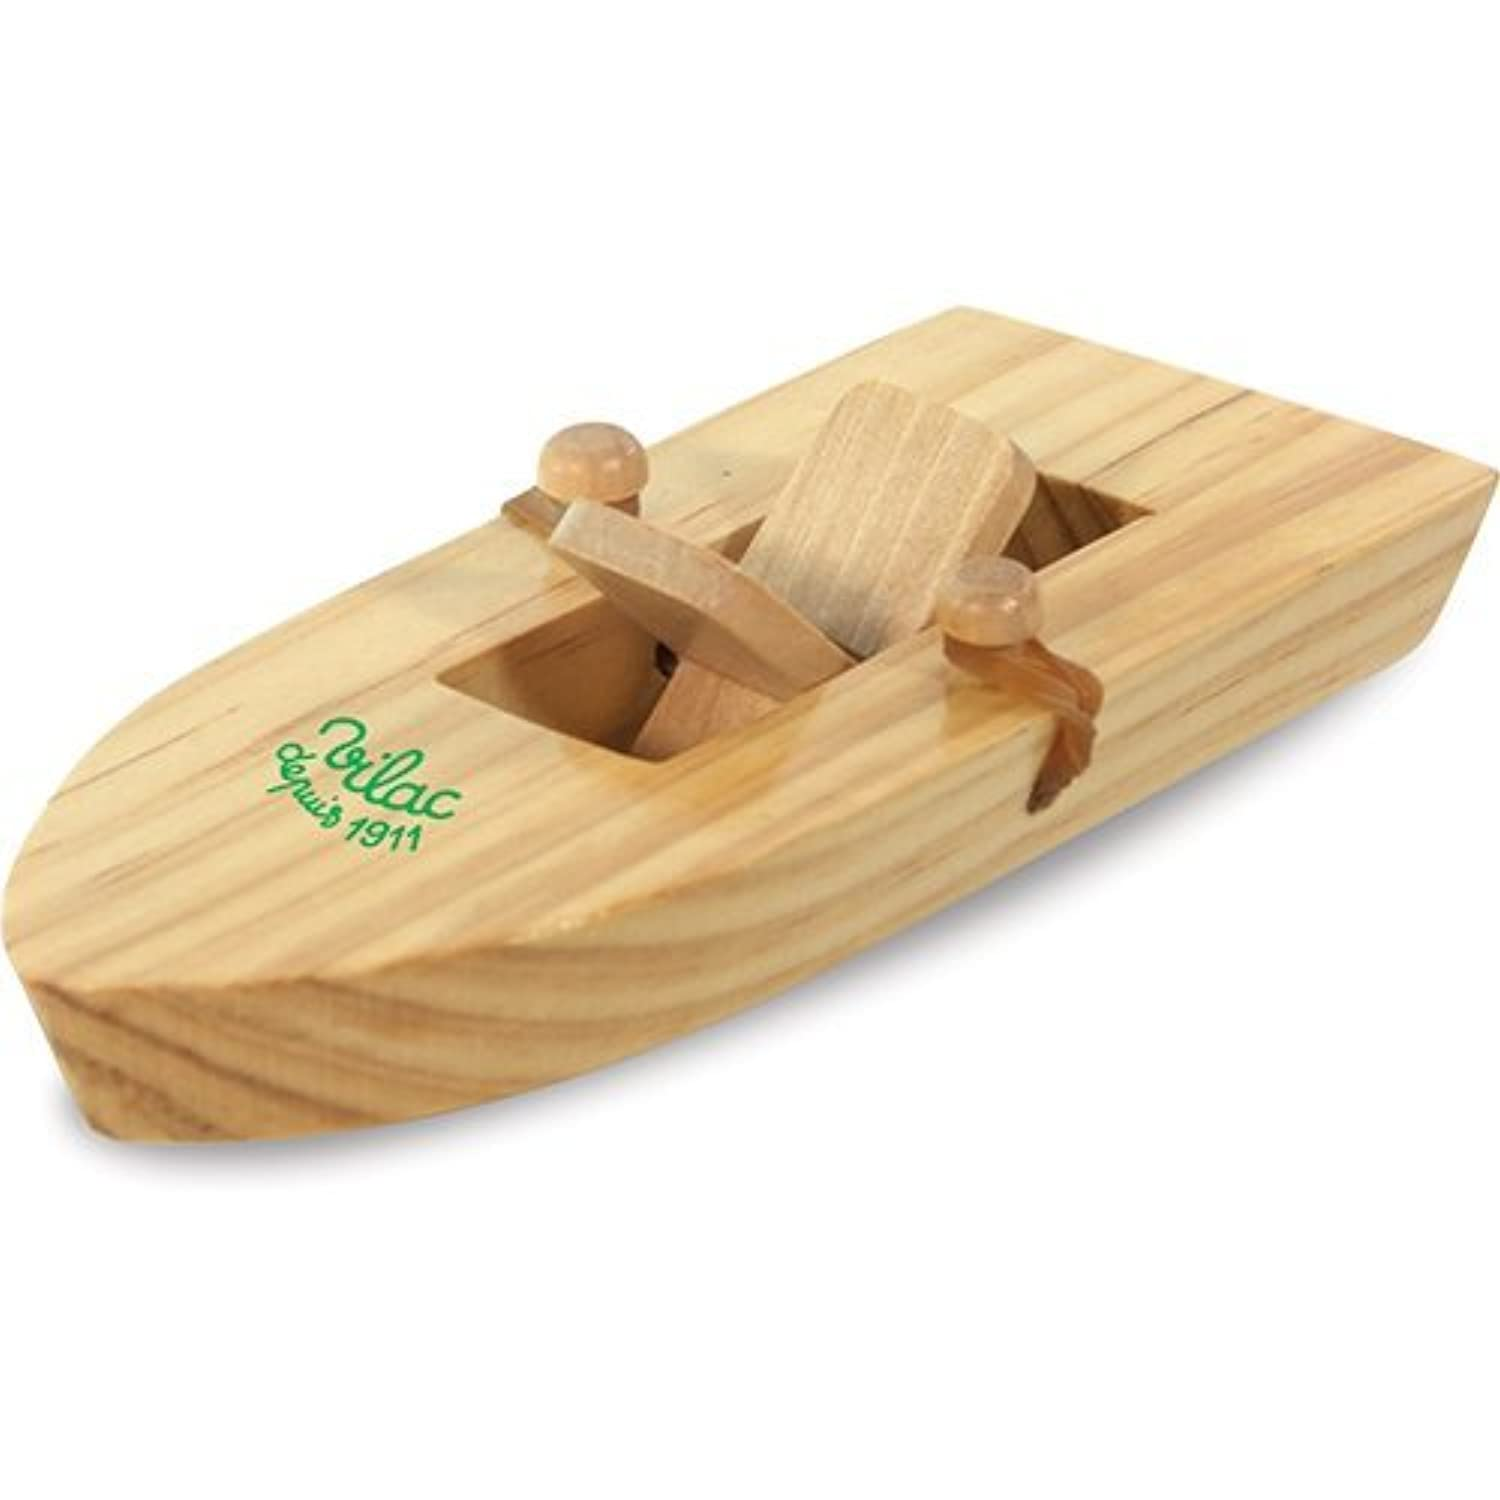 Vilac Rubber Band Powered Boat by Vilac [並行輸入品]